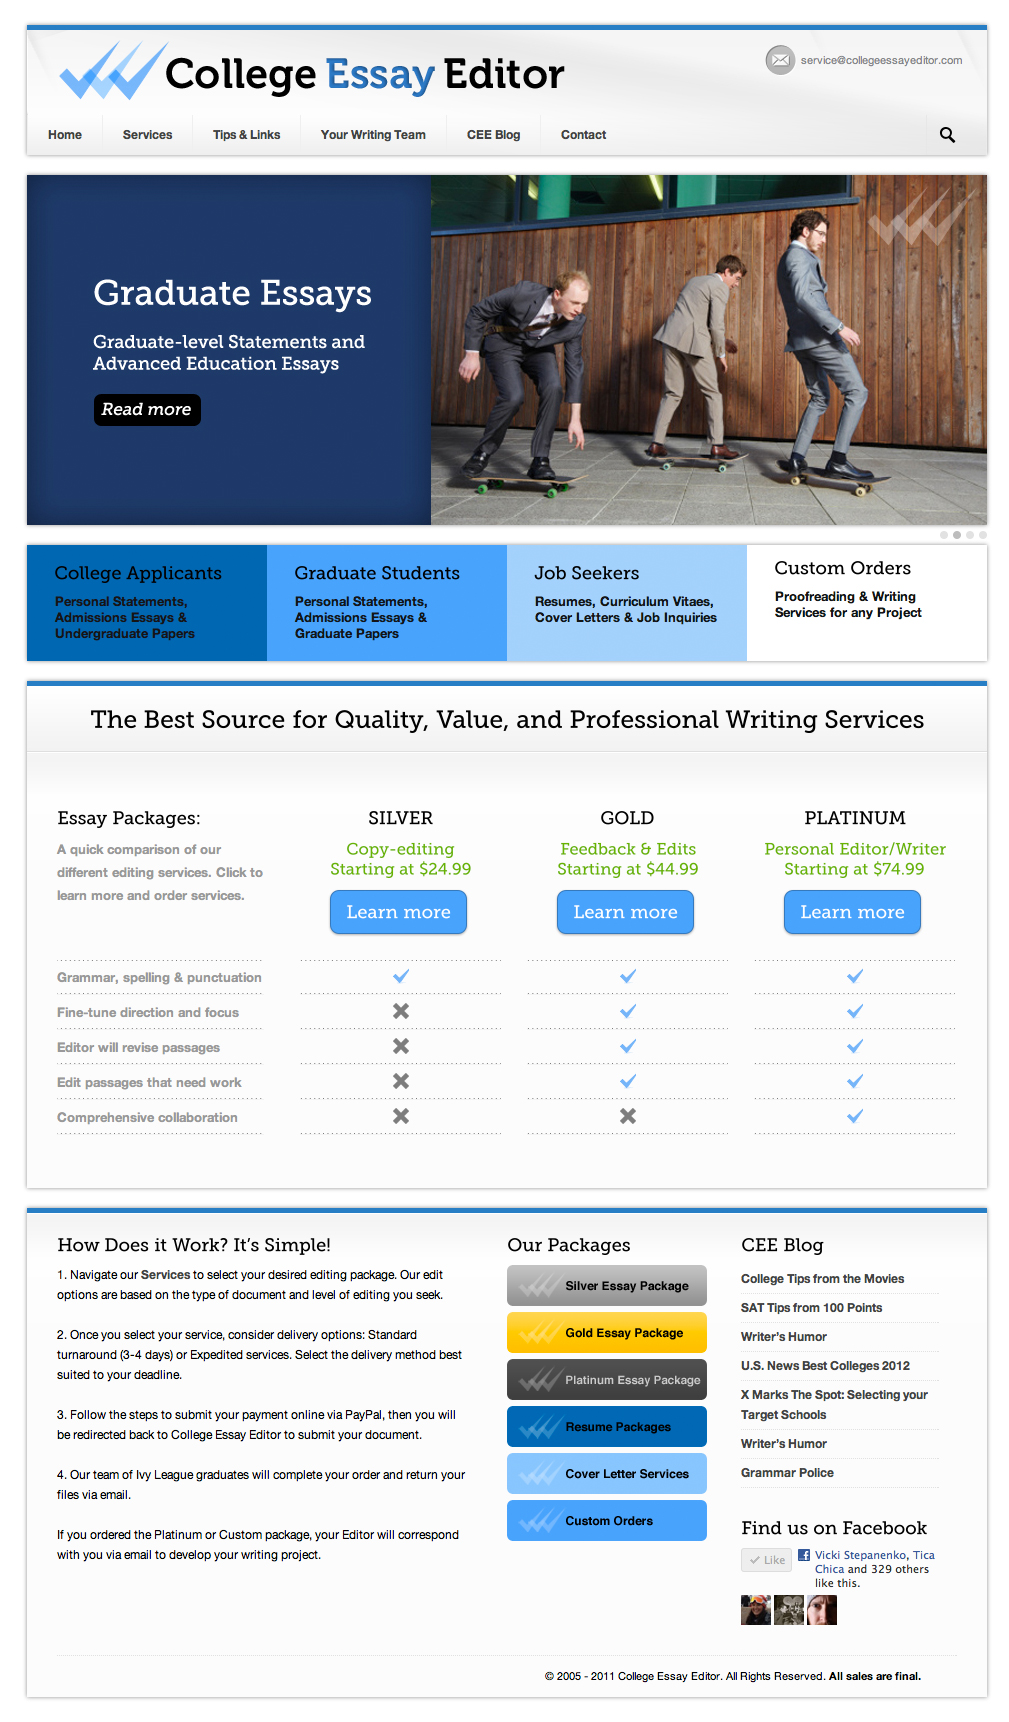 Online essay editing services